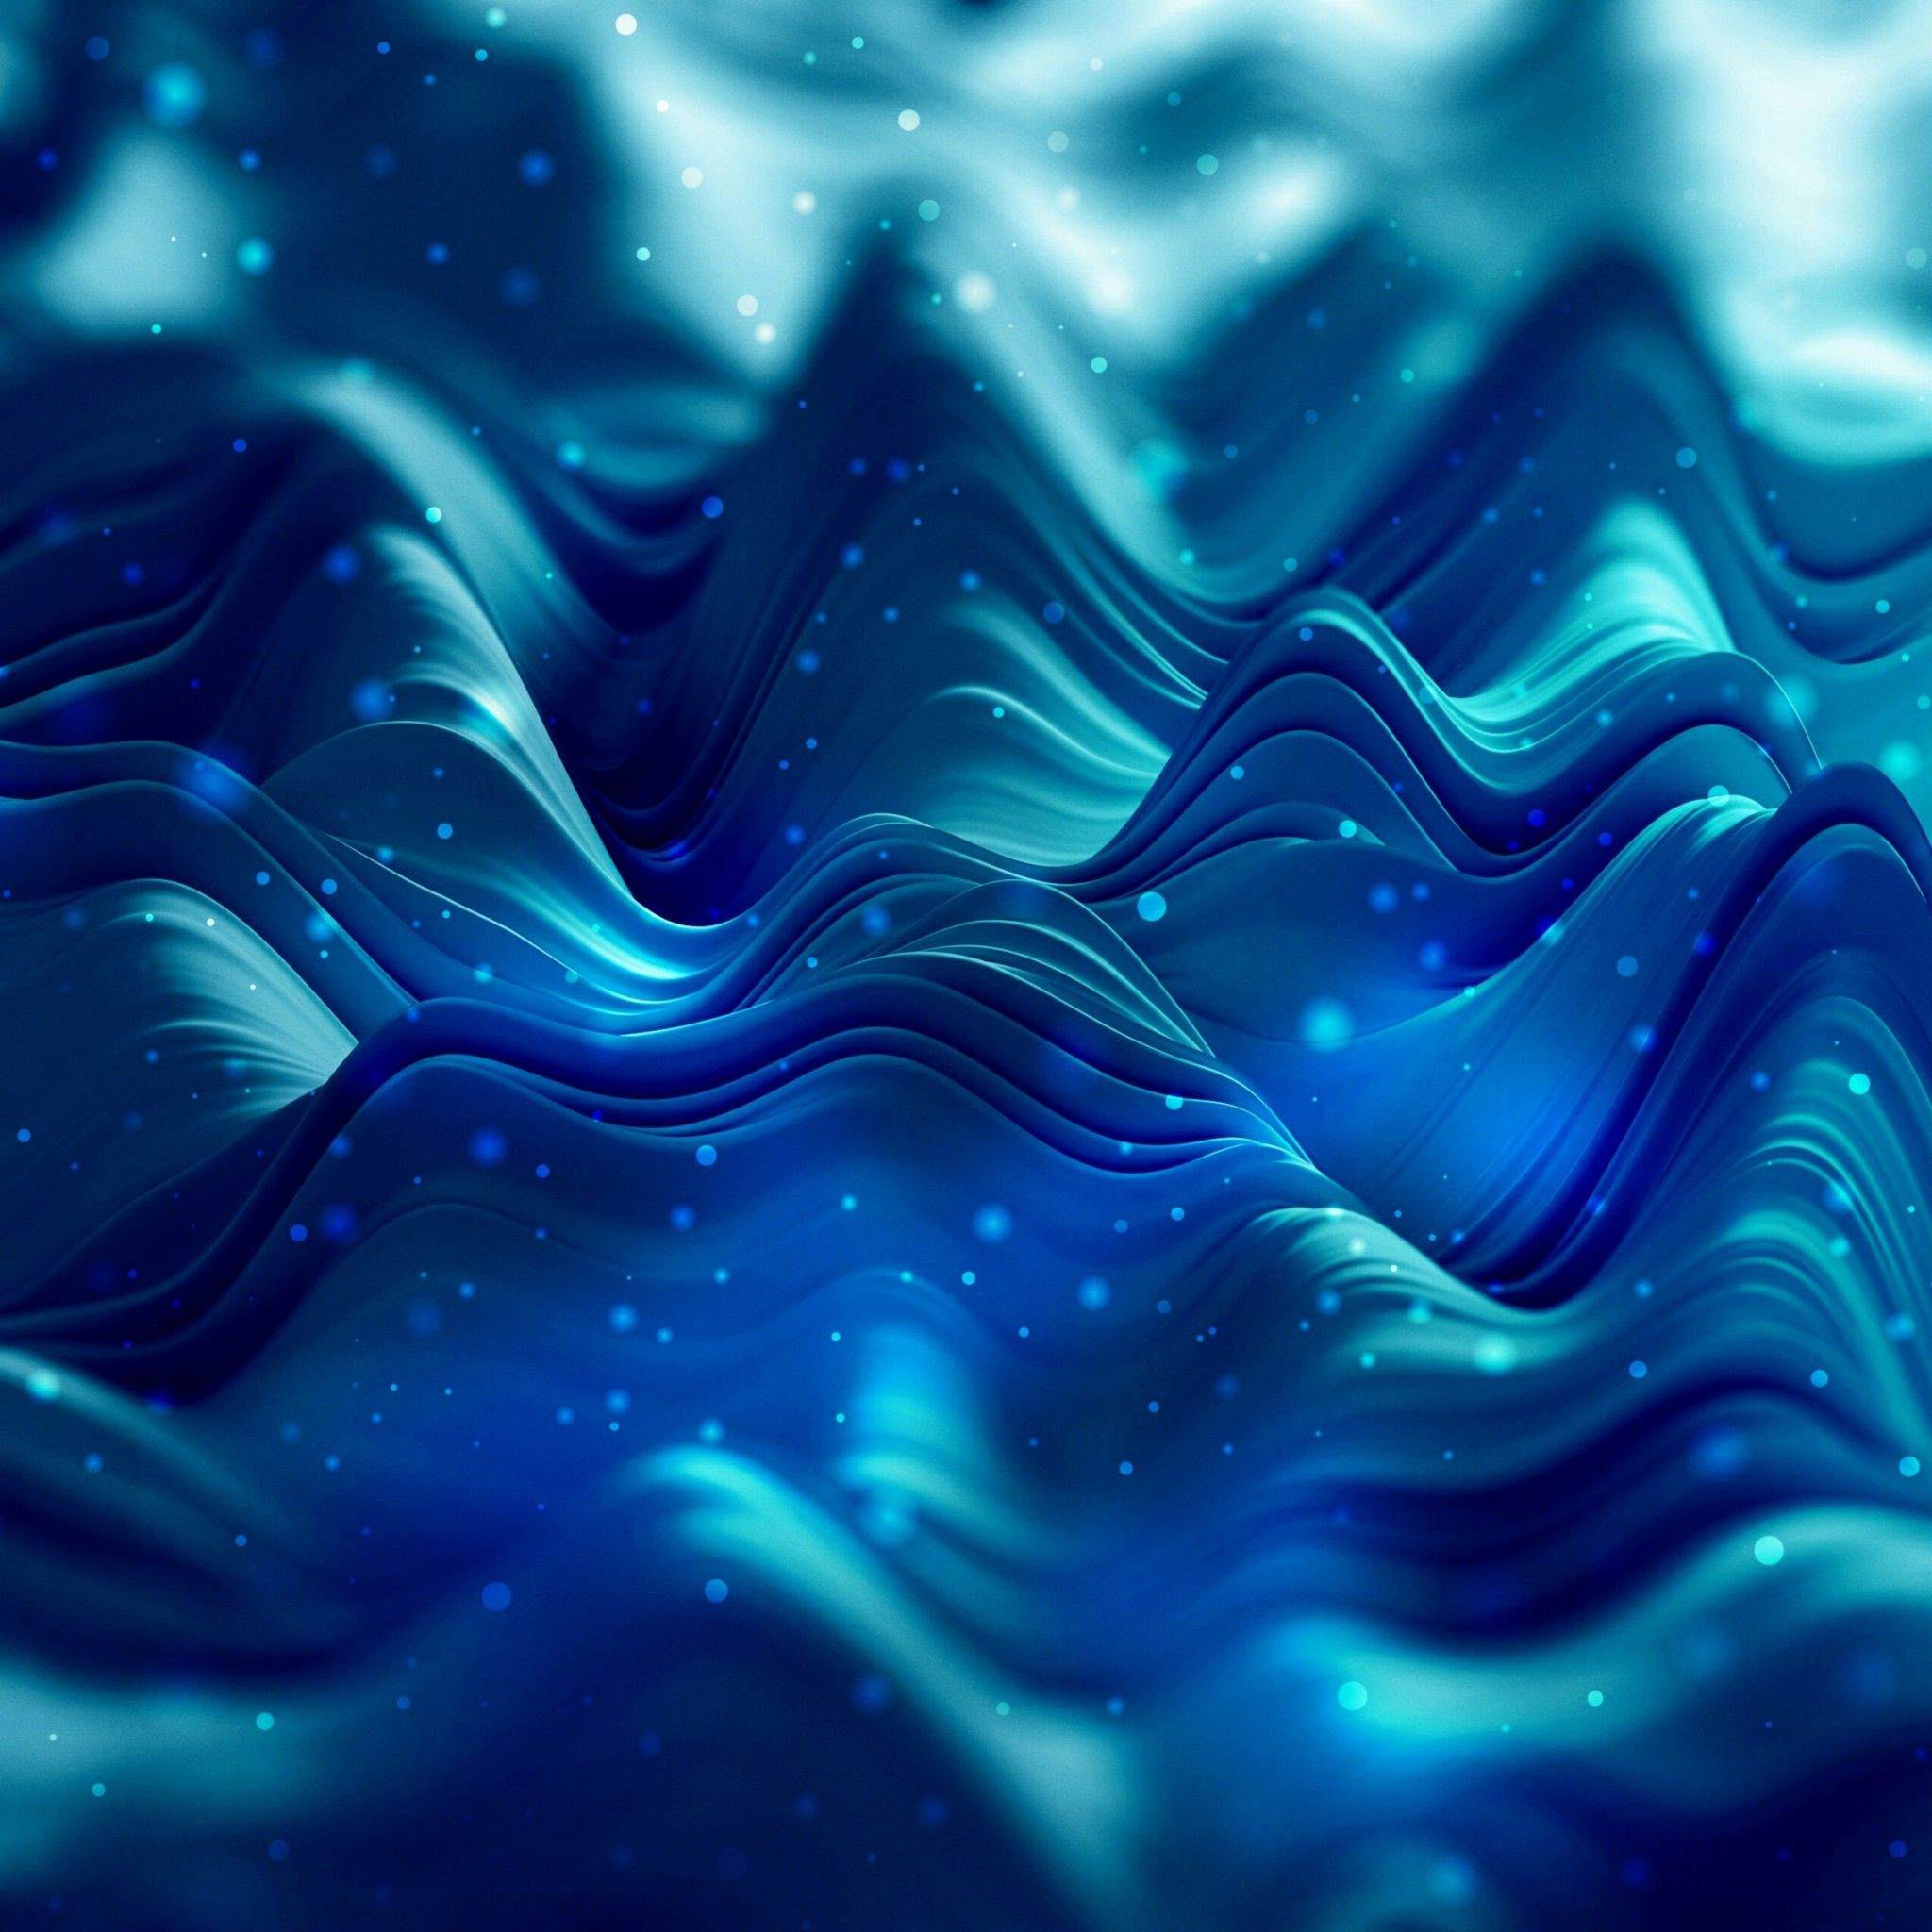 3d Waves Tap To See More Futuristic 3d Abstract Wallpapers Mobile9 Abstract Abstract Wallpaper Wallpaper